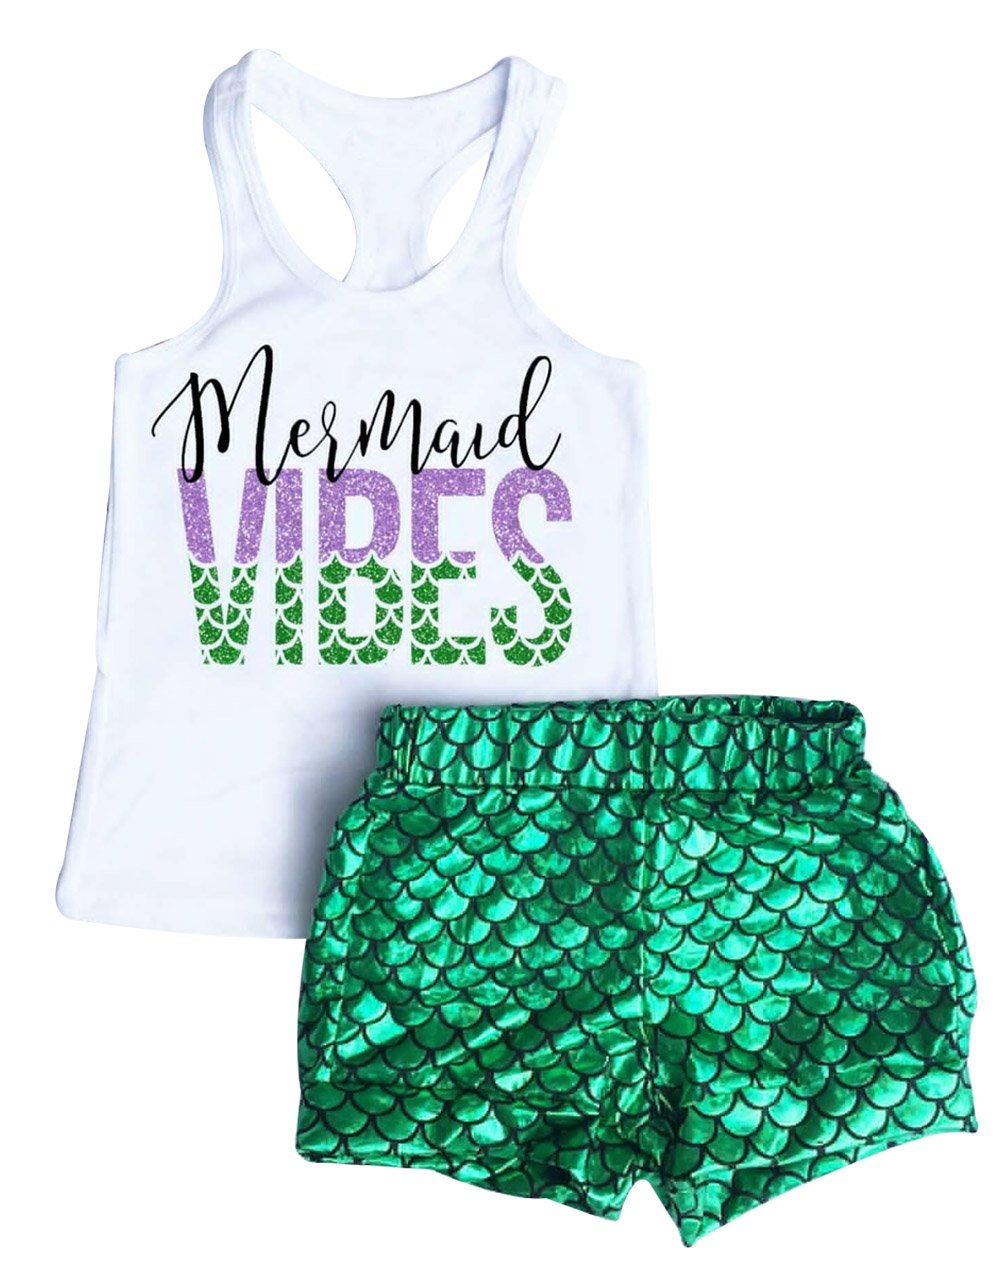 2Pcs Baby Girls Mermaid Vibes Print Vest Tops Fish Scale Short Pants Sets Size 12-18Months/Tag90 (White)